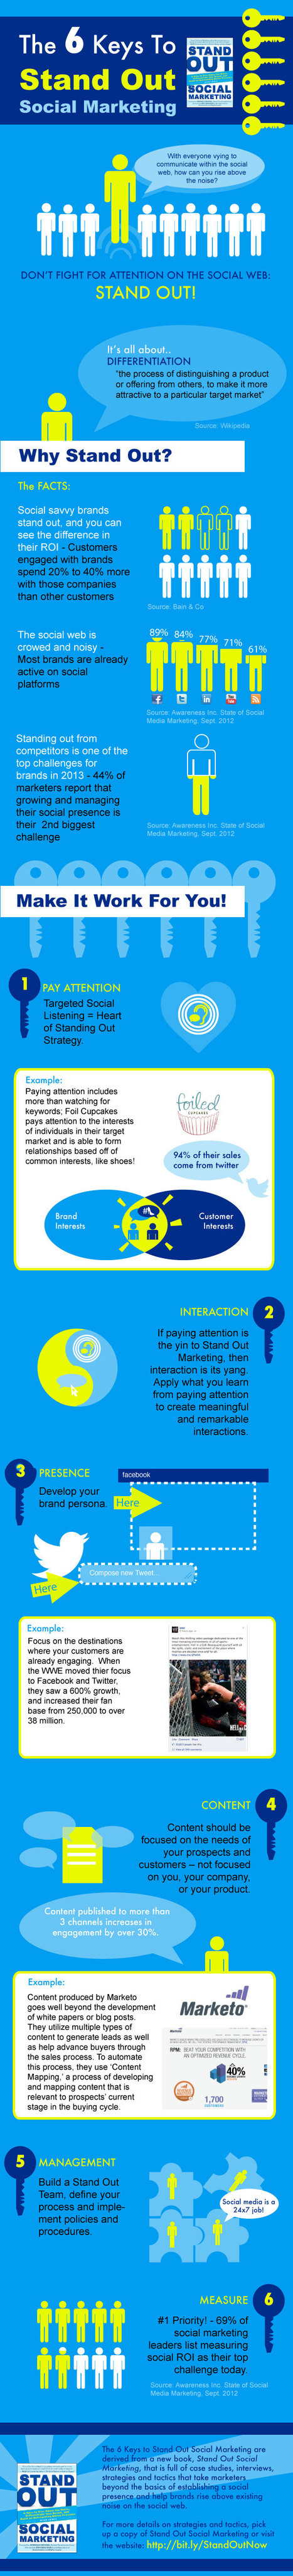 Six Keys to Standing Out on the Social Web [Infographic]   Social Media Tips & News   Scoop.it